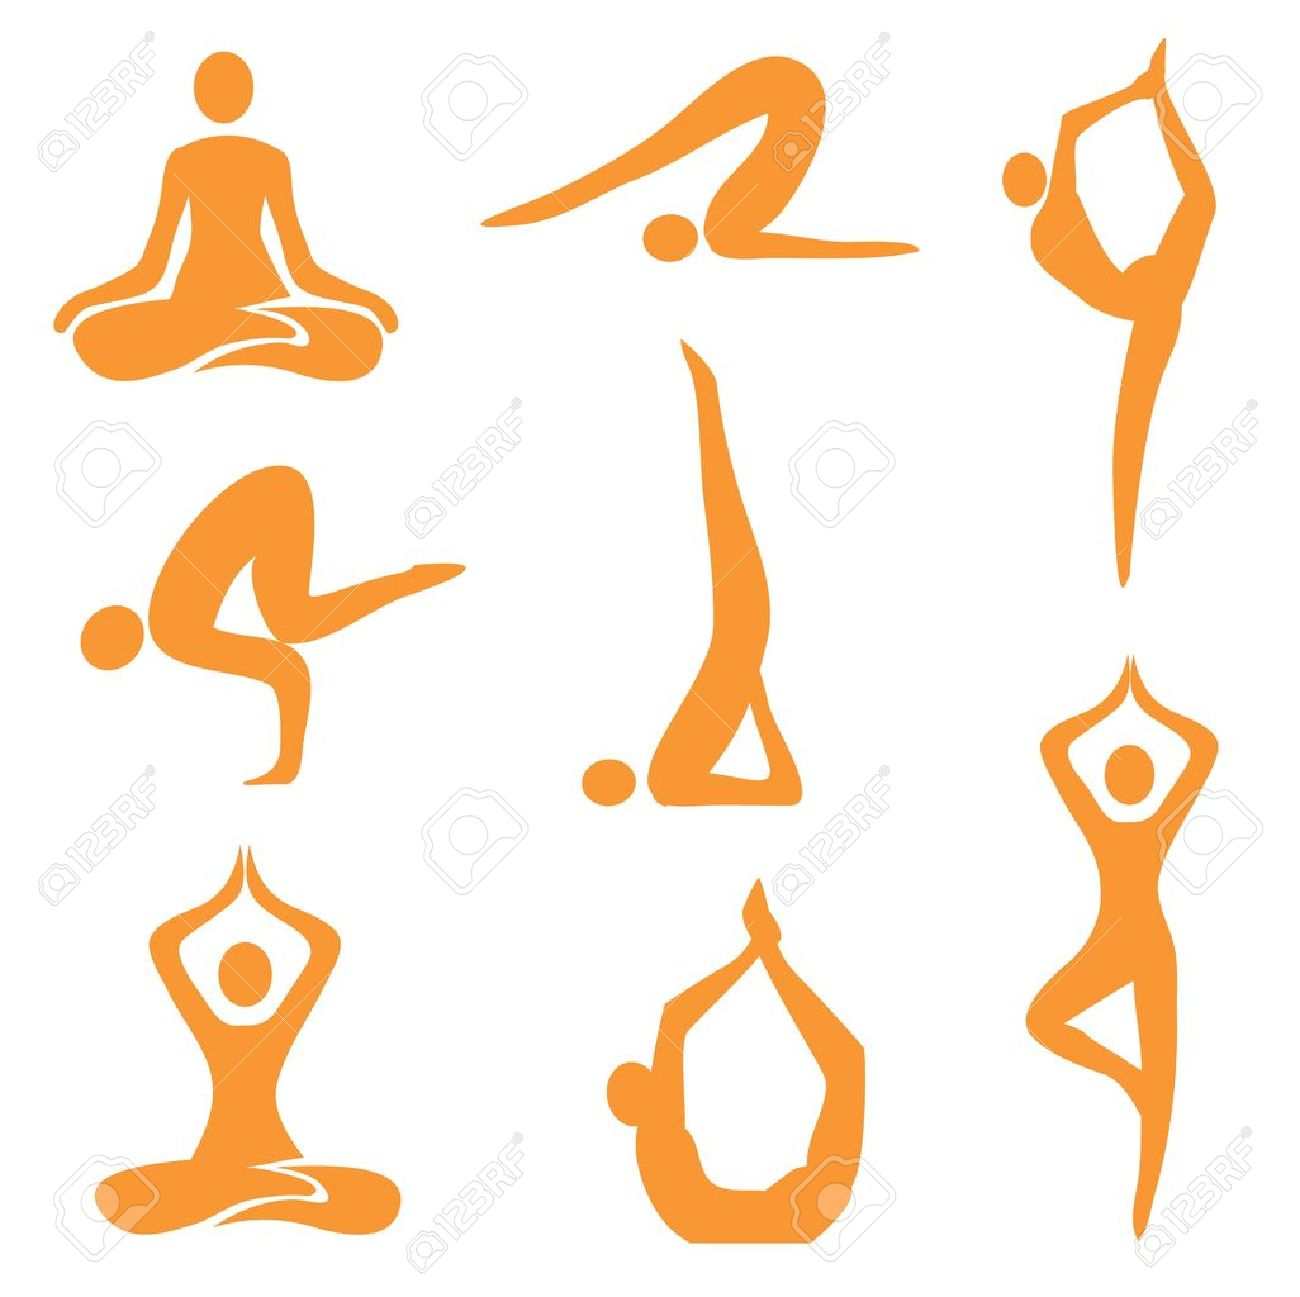 26,555 Yoga Icon Stock Vector Illustration And Royalty Free Yoga ...